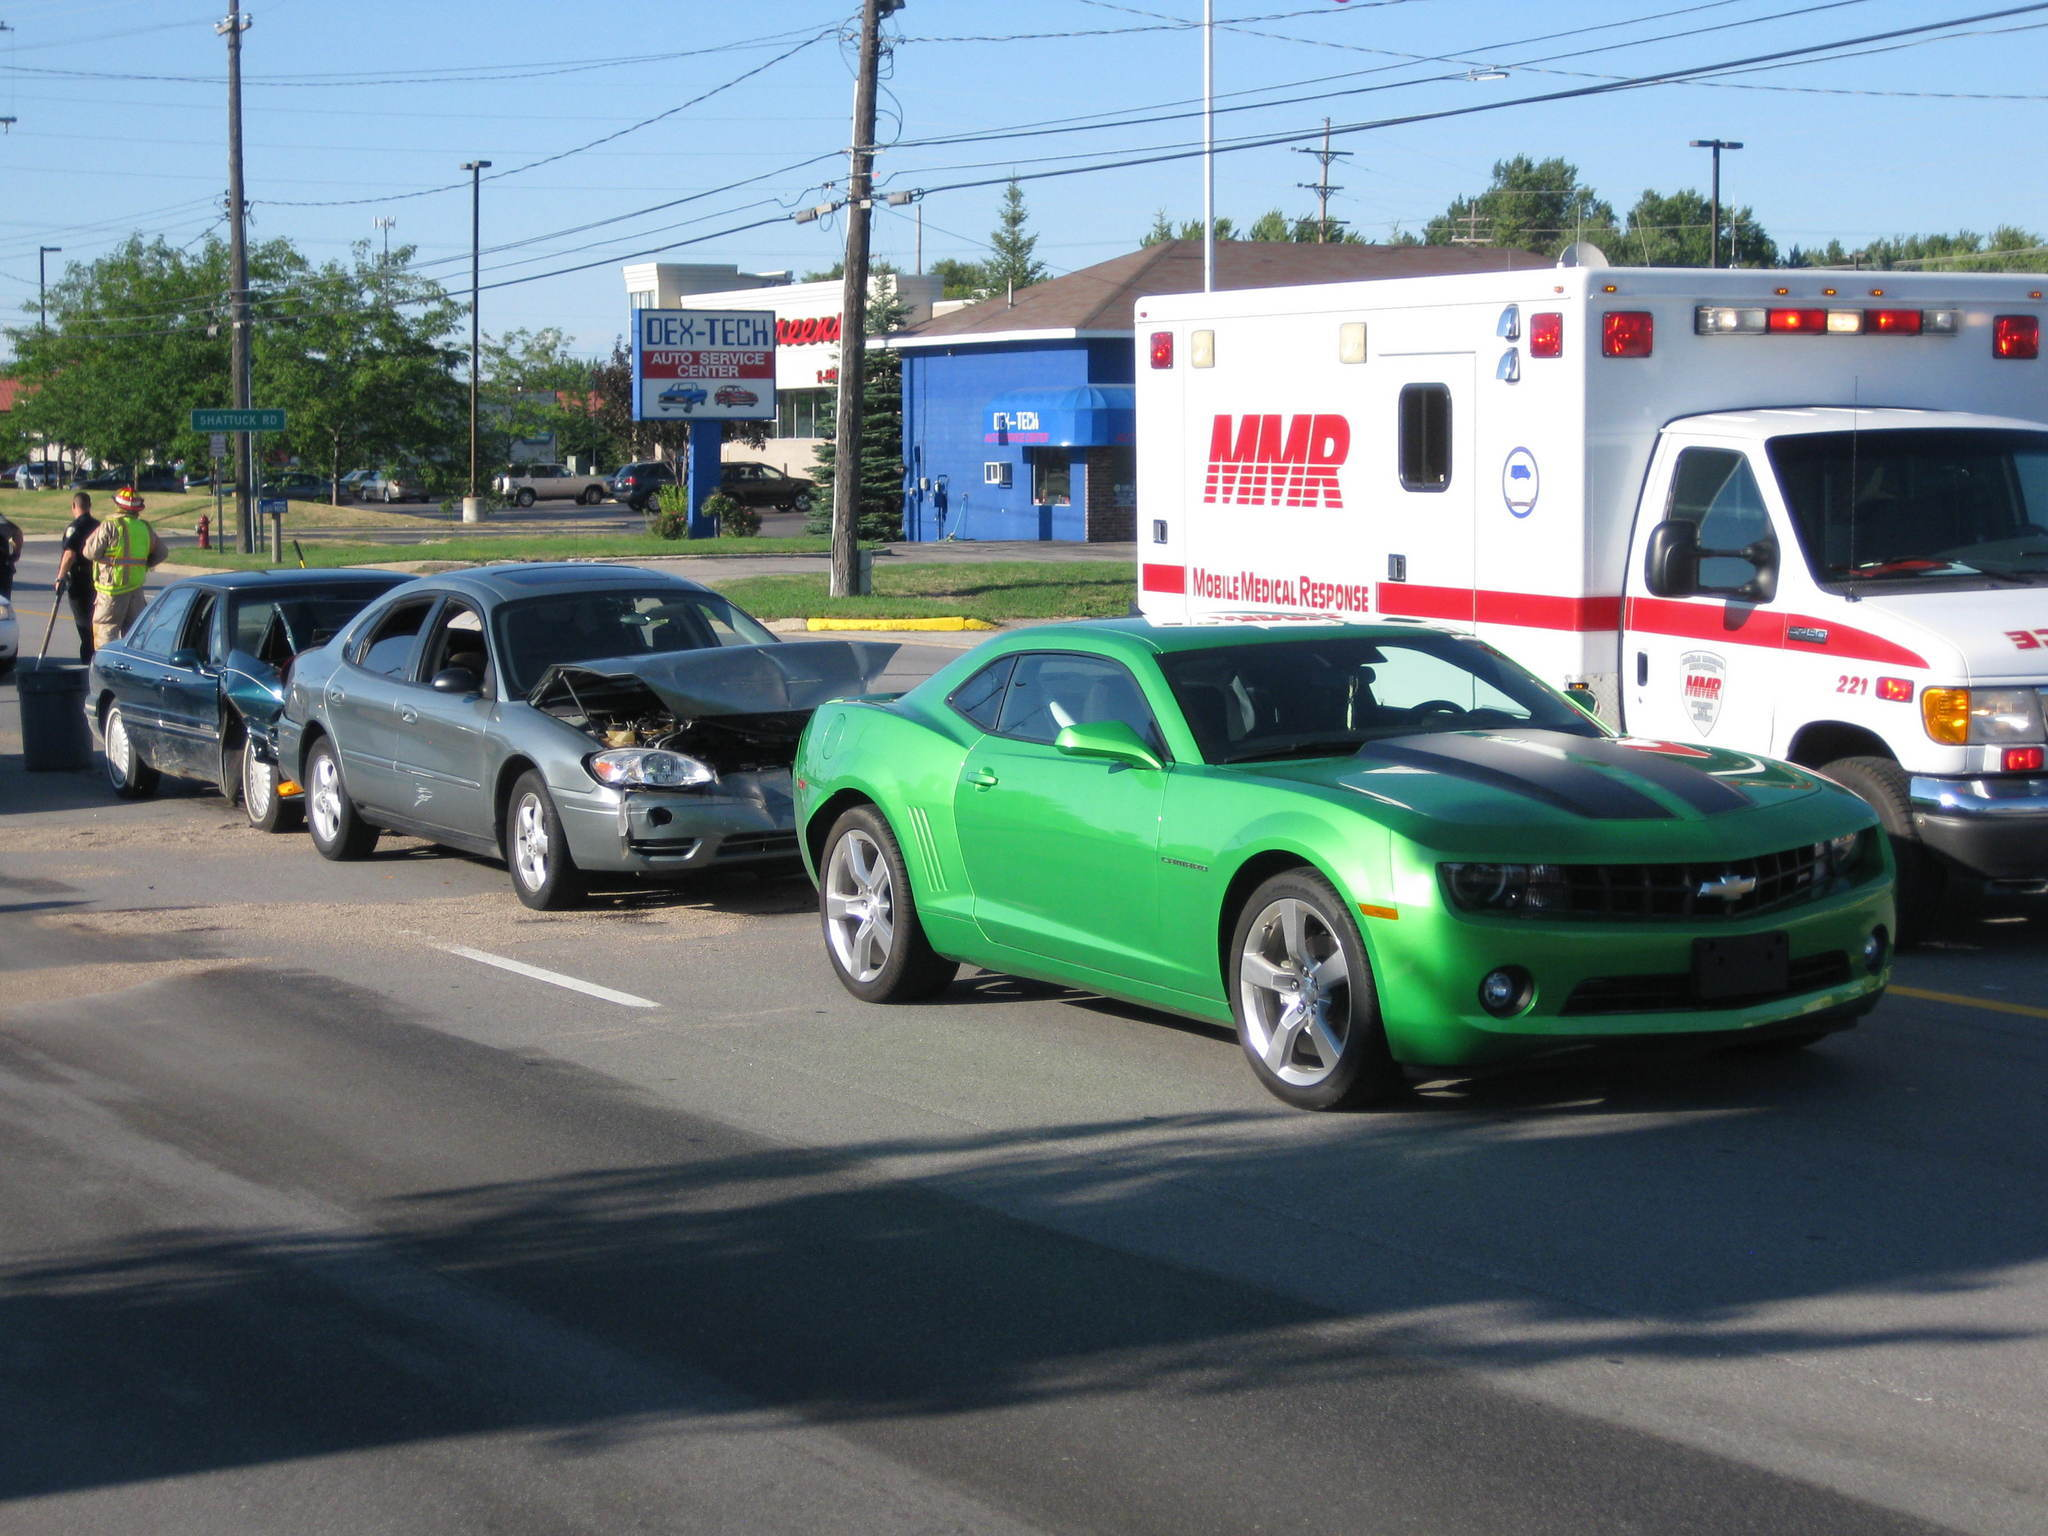 3 Car Pile Up Accident   Who is at Fault   Liability